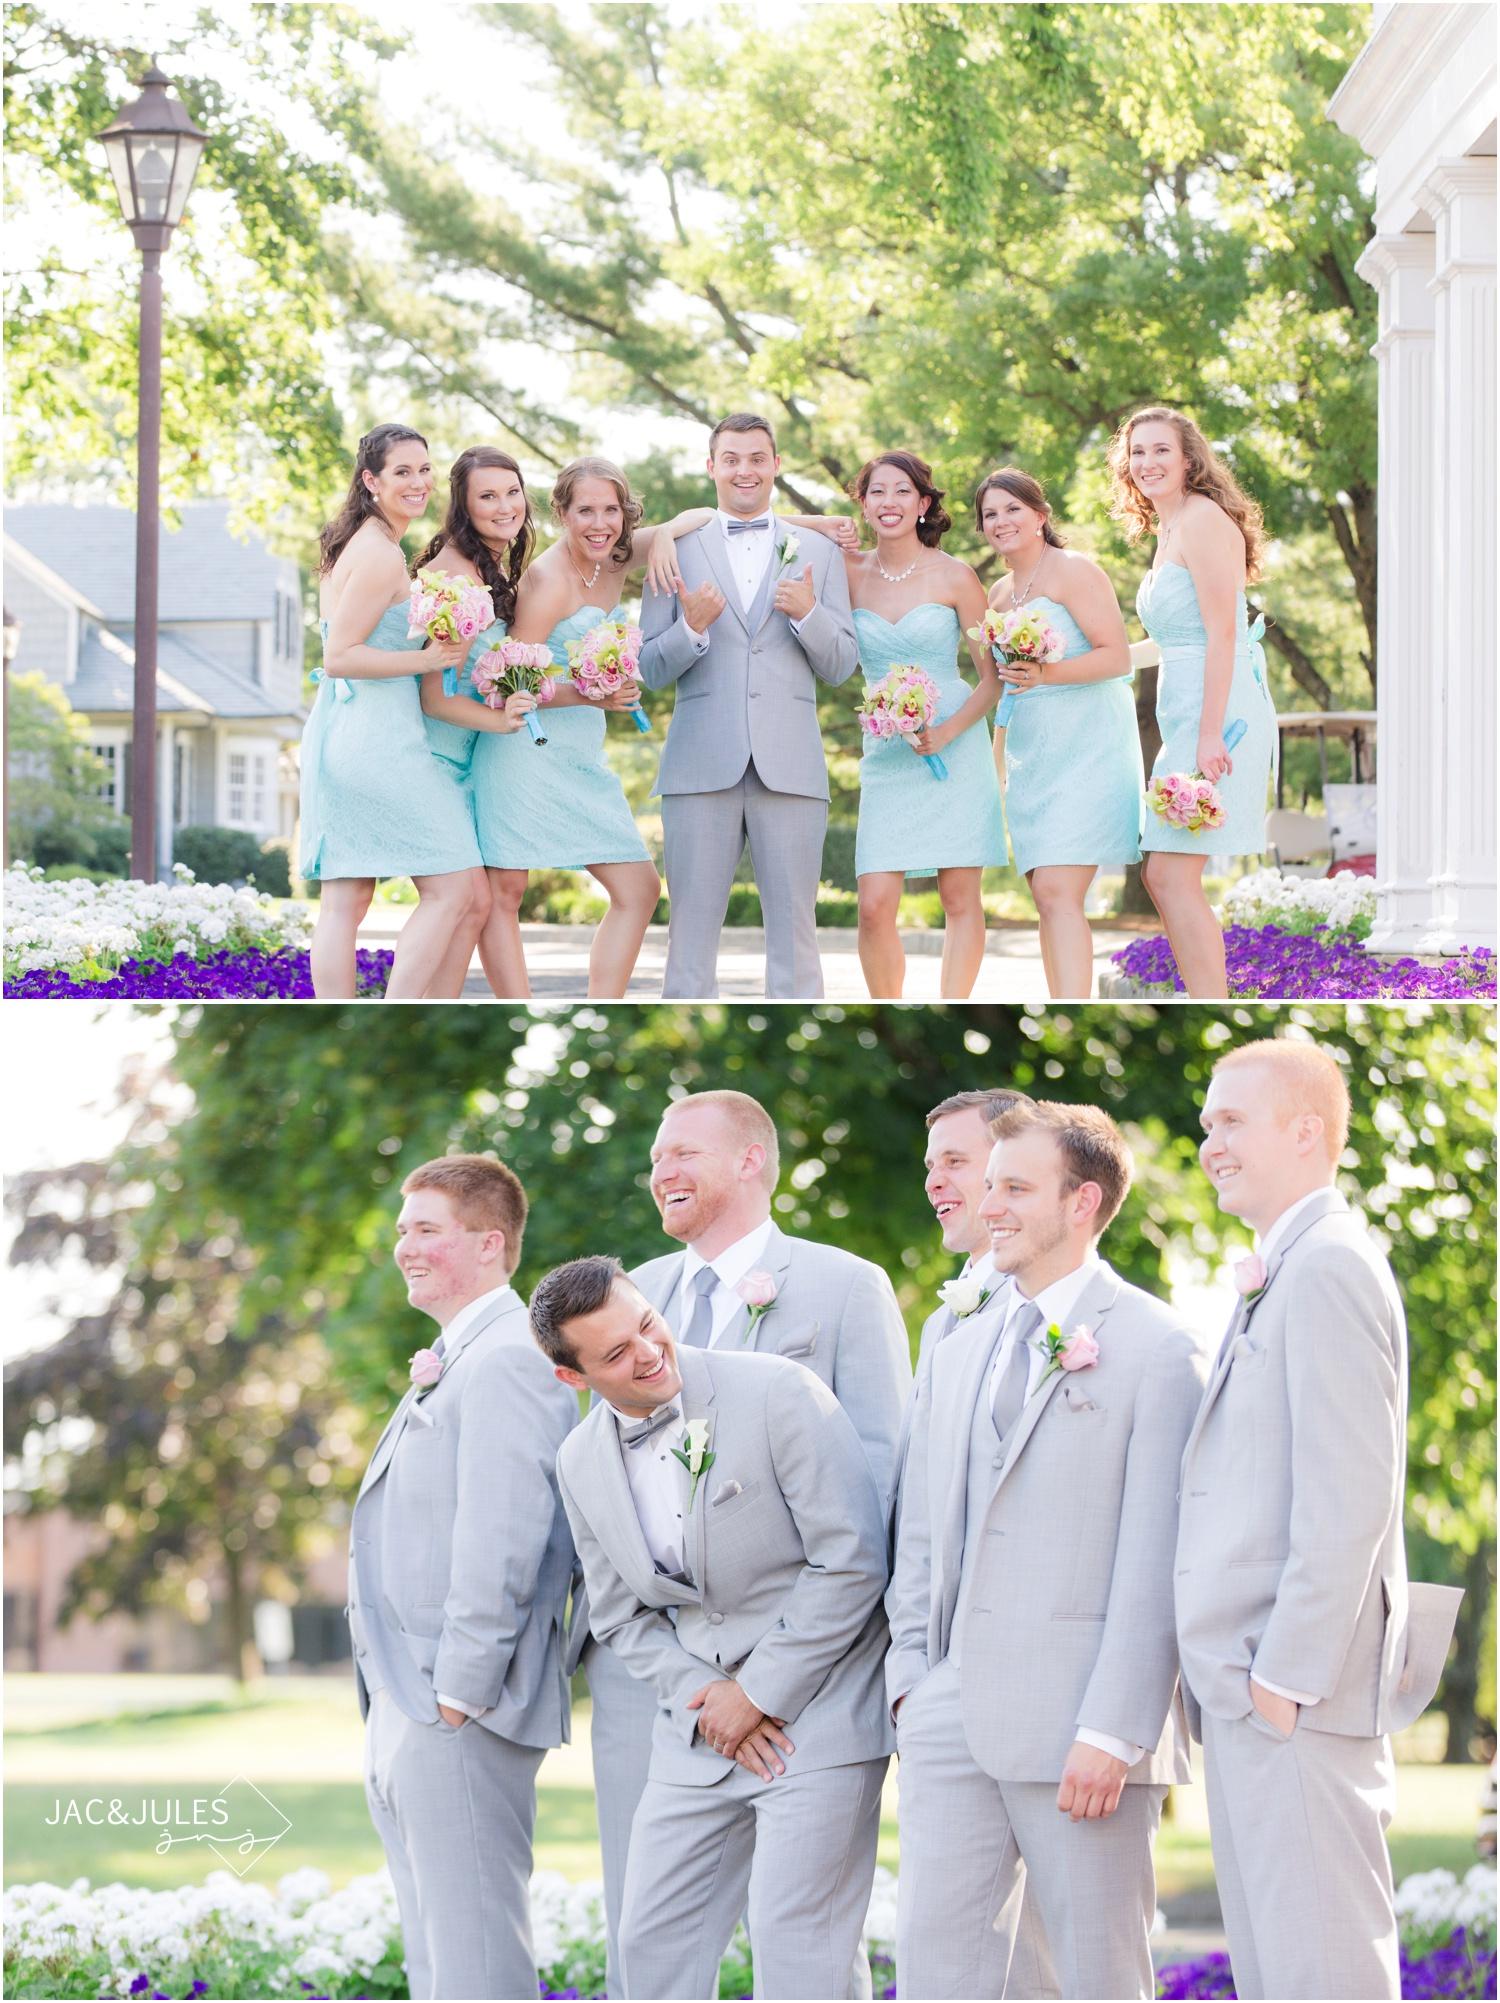 bridal party photos at forsgate country club in Monroe, NJ.